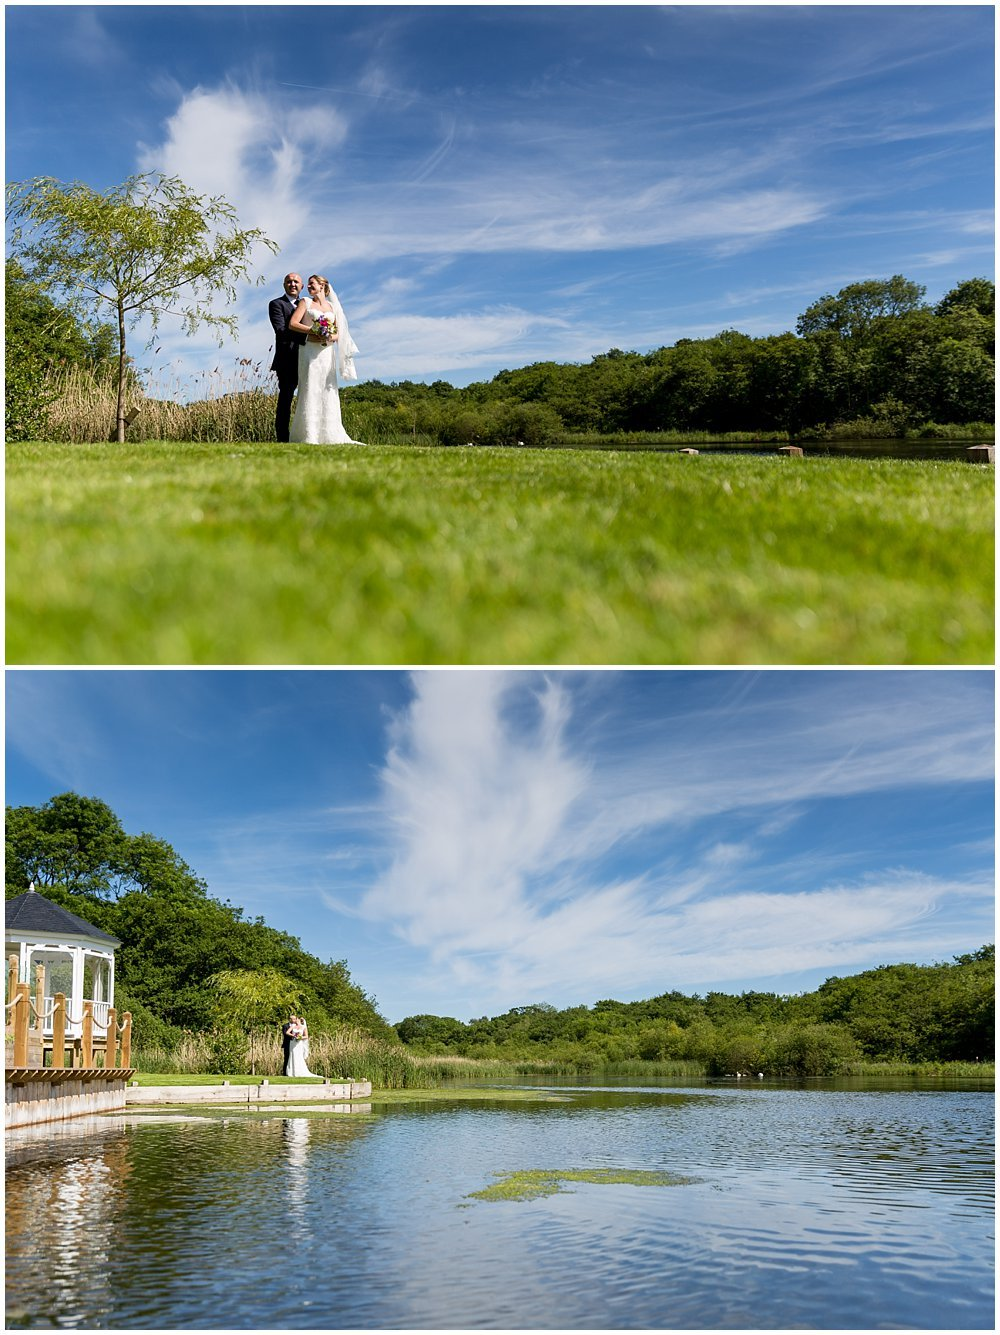 AMY AND DUNCAN NORWICH CATHEDRAL AND THE BOATHOUSE WEDDING - NORWICH AND NORFOLK WEDDING PHOTOGRAPHER 40